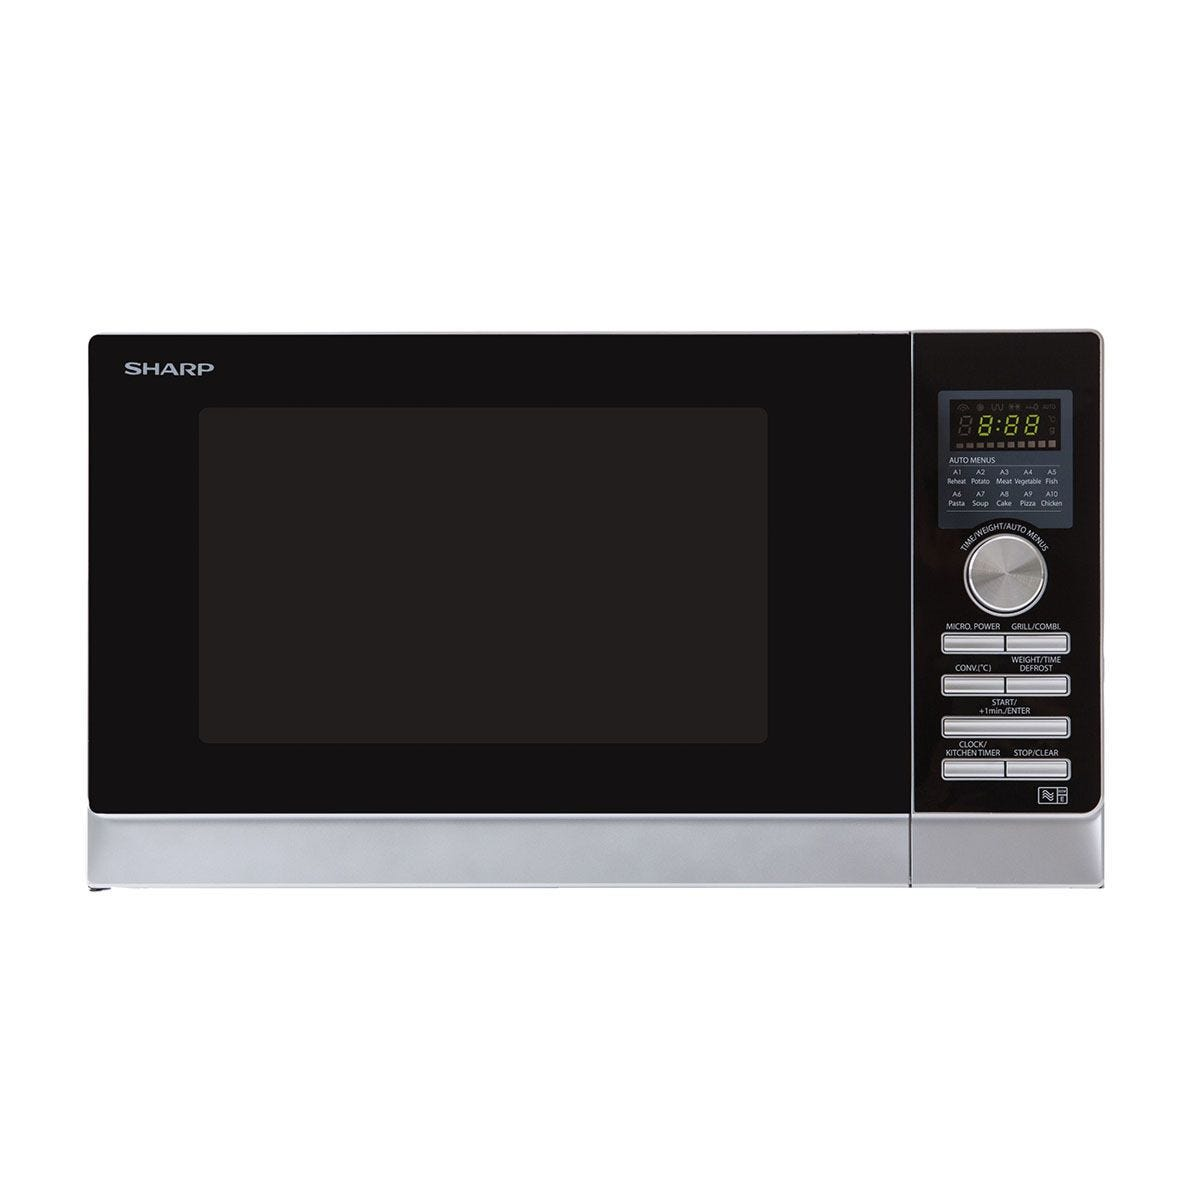 Sharp R843SLM 25L 900W Convection Microwave - Stainless Steel